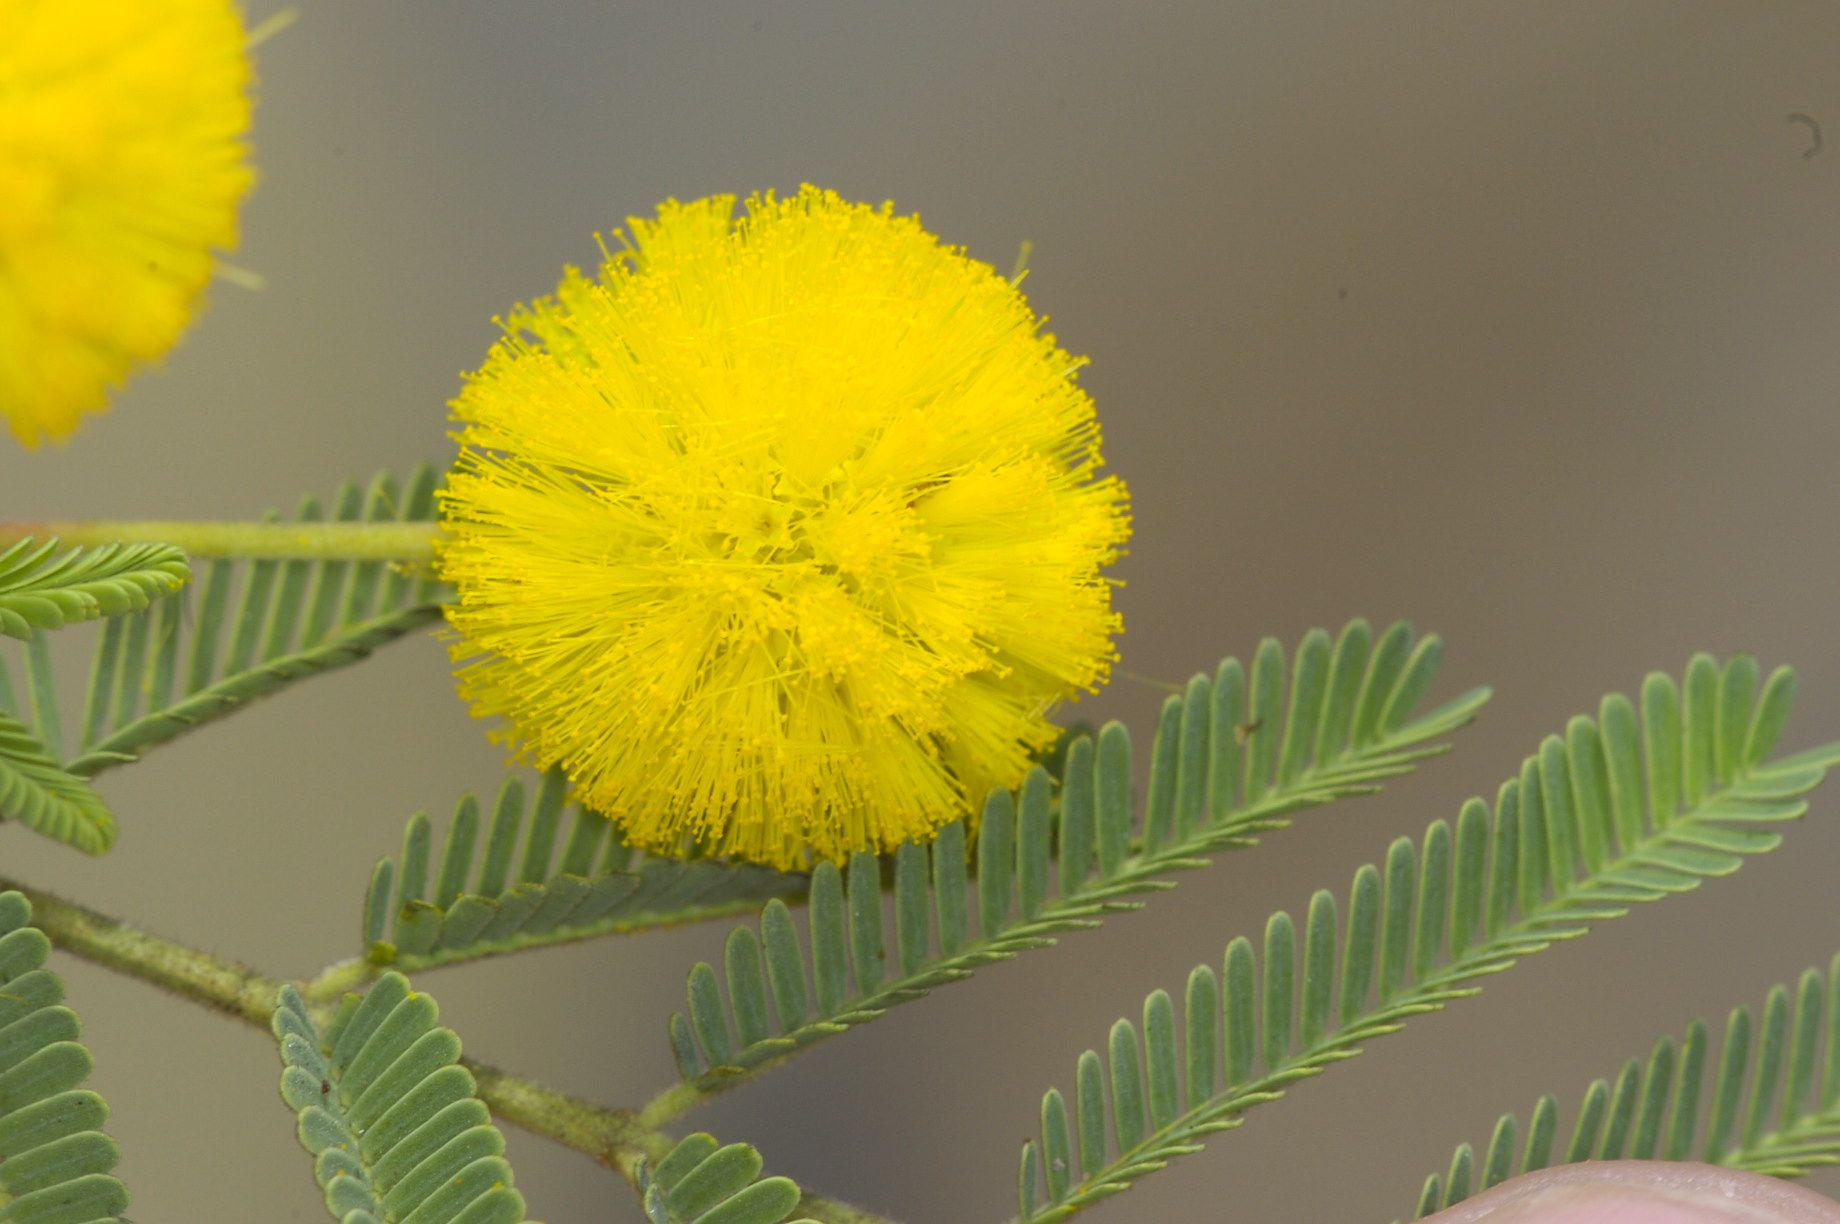 Acacia Nilotica Yellow Flower And Leaves Australian Wildflowers Flowers Yellow Flowers